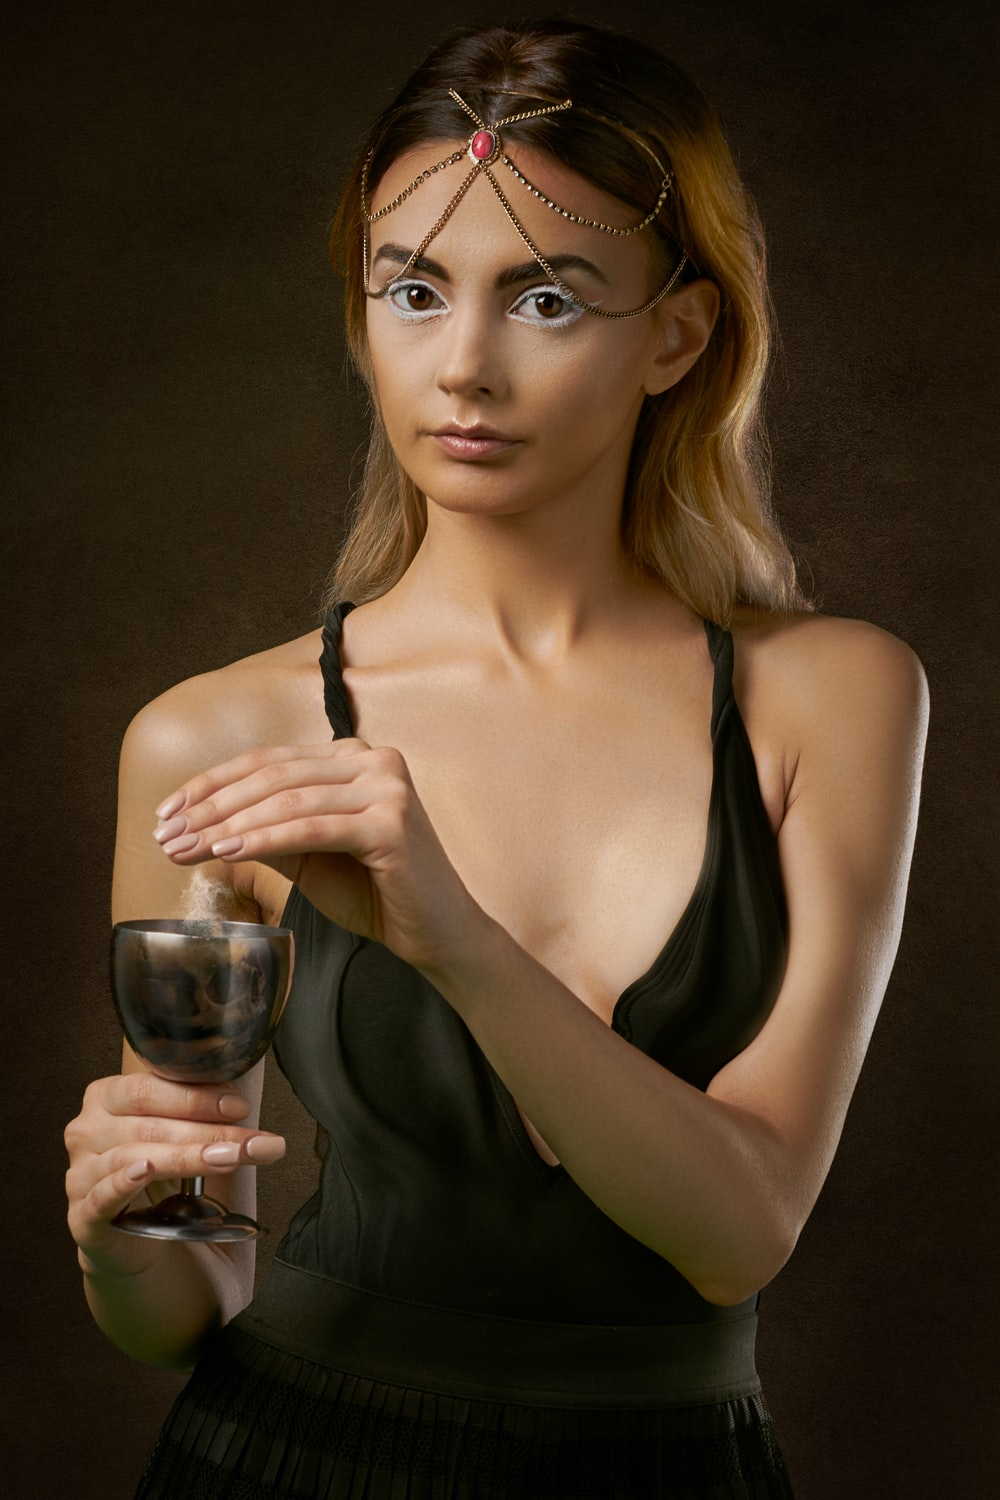 woman standing and holding glass of wine